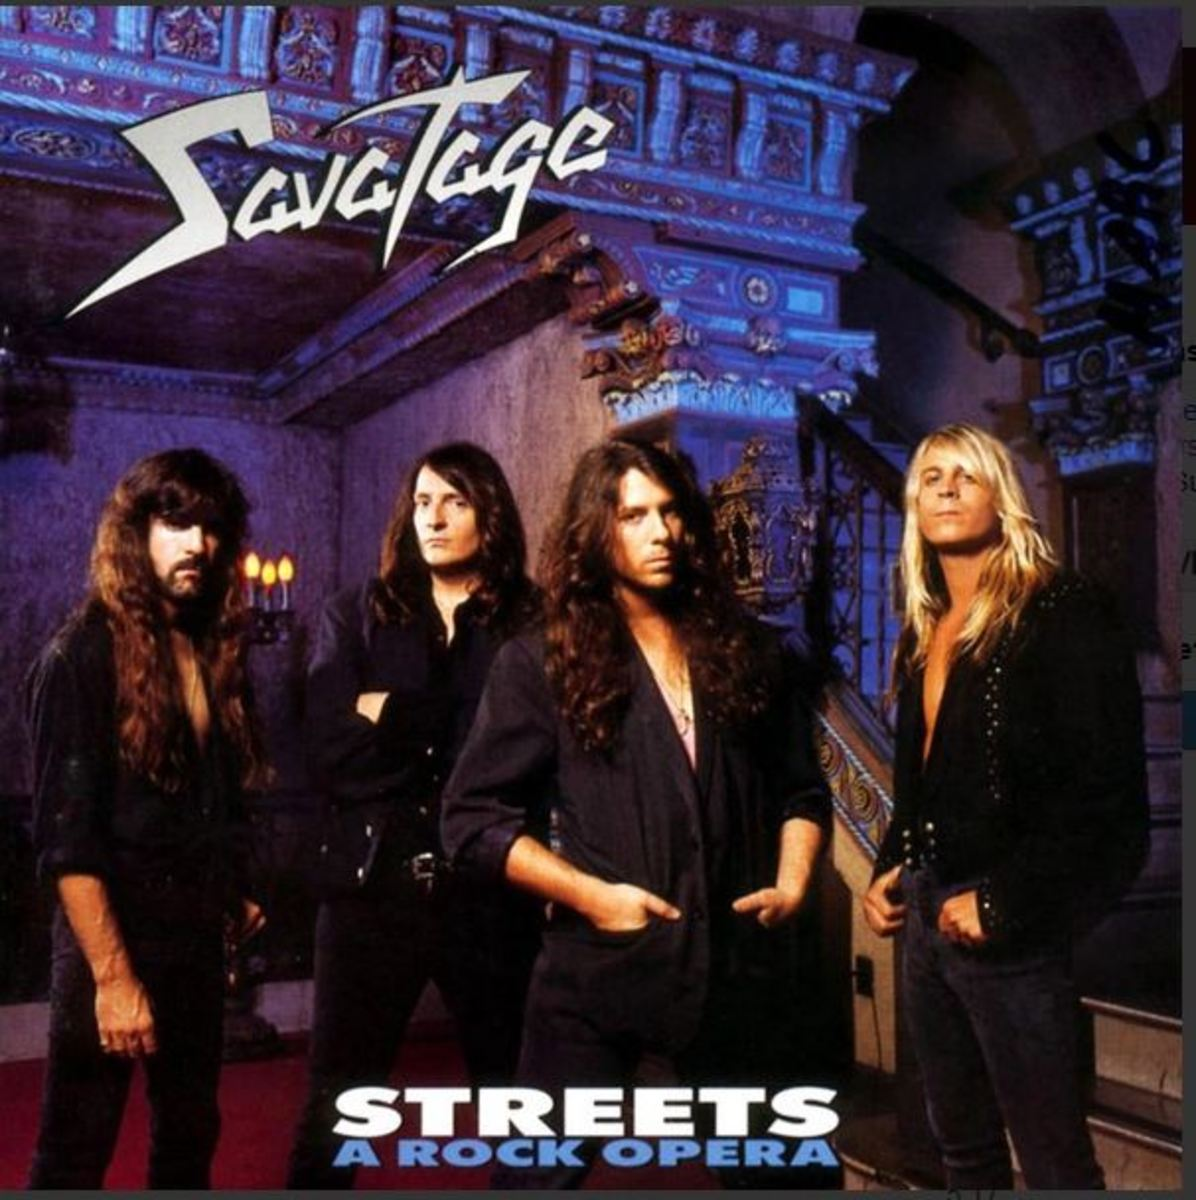 savatage-streets-a-rock-opera-review